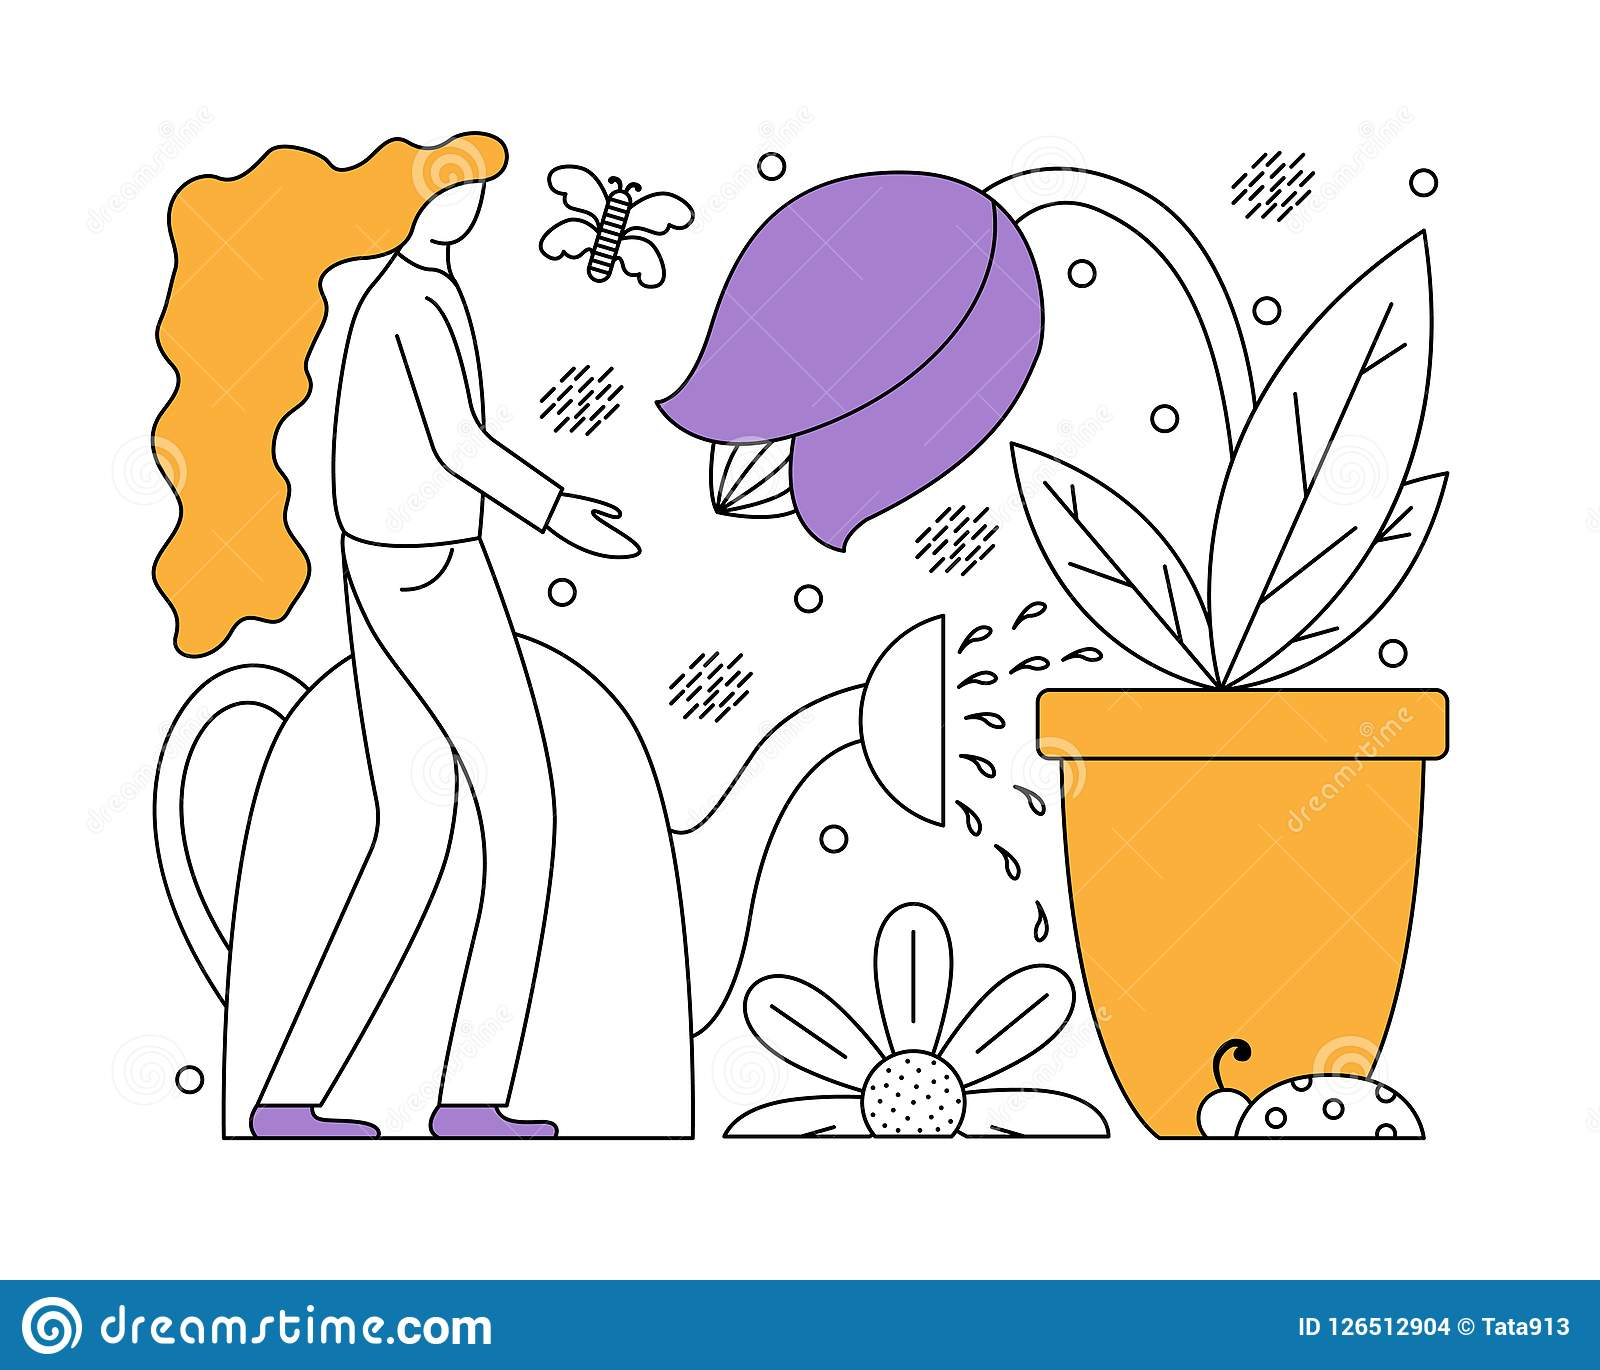 Vector illustration with a flat girl taking care of plants.